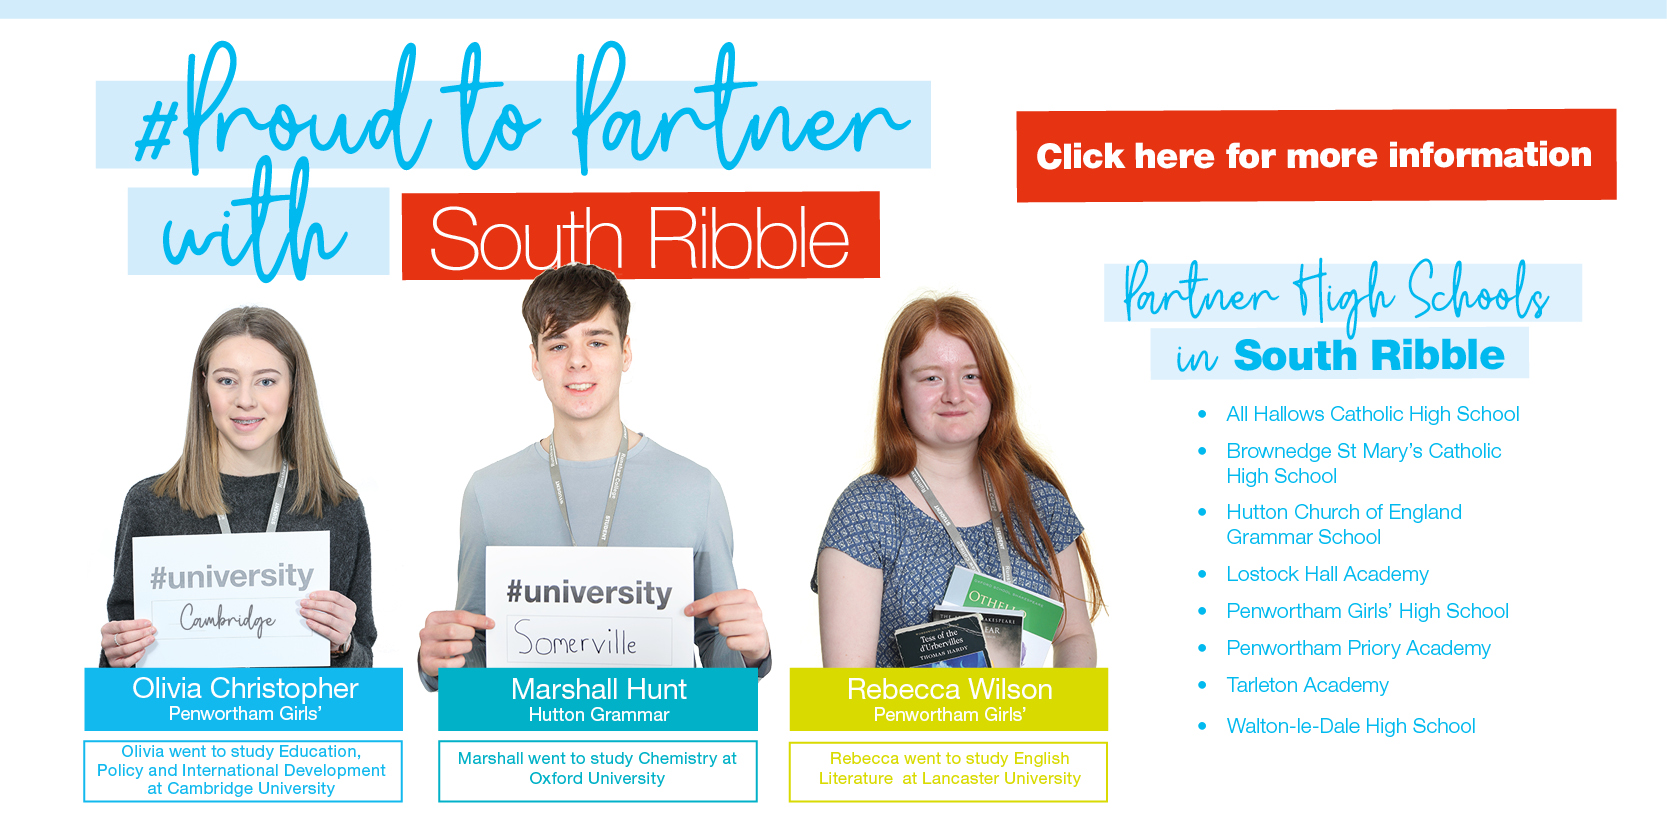 Proud to Partner with South Ribble... Click HERE for more information Thumbnail